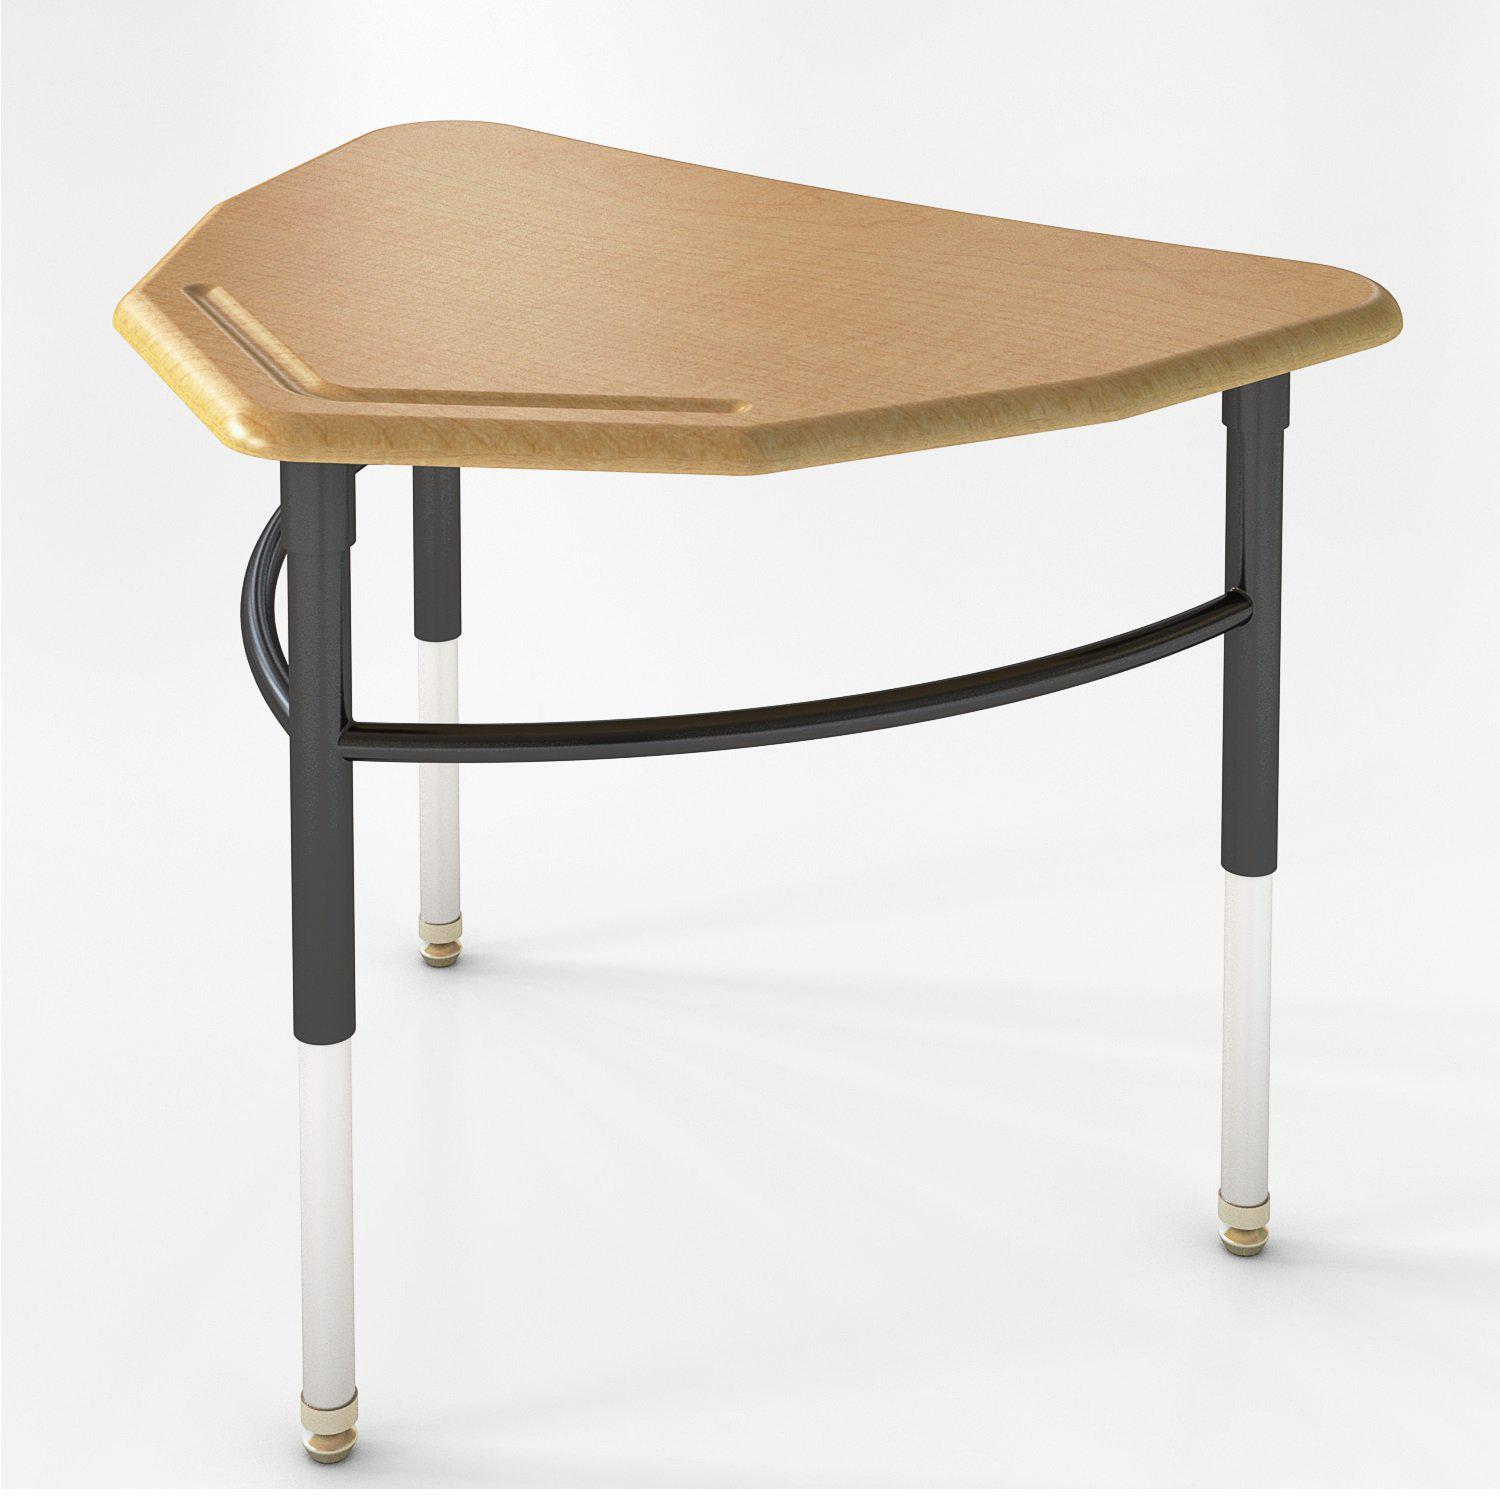 Kaleidoscope Collaborative Learning  Adjustable Height Diamond Desk with Solid Plastic Top